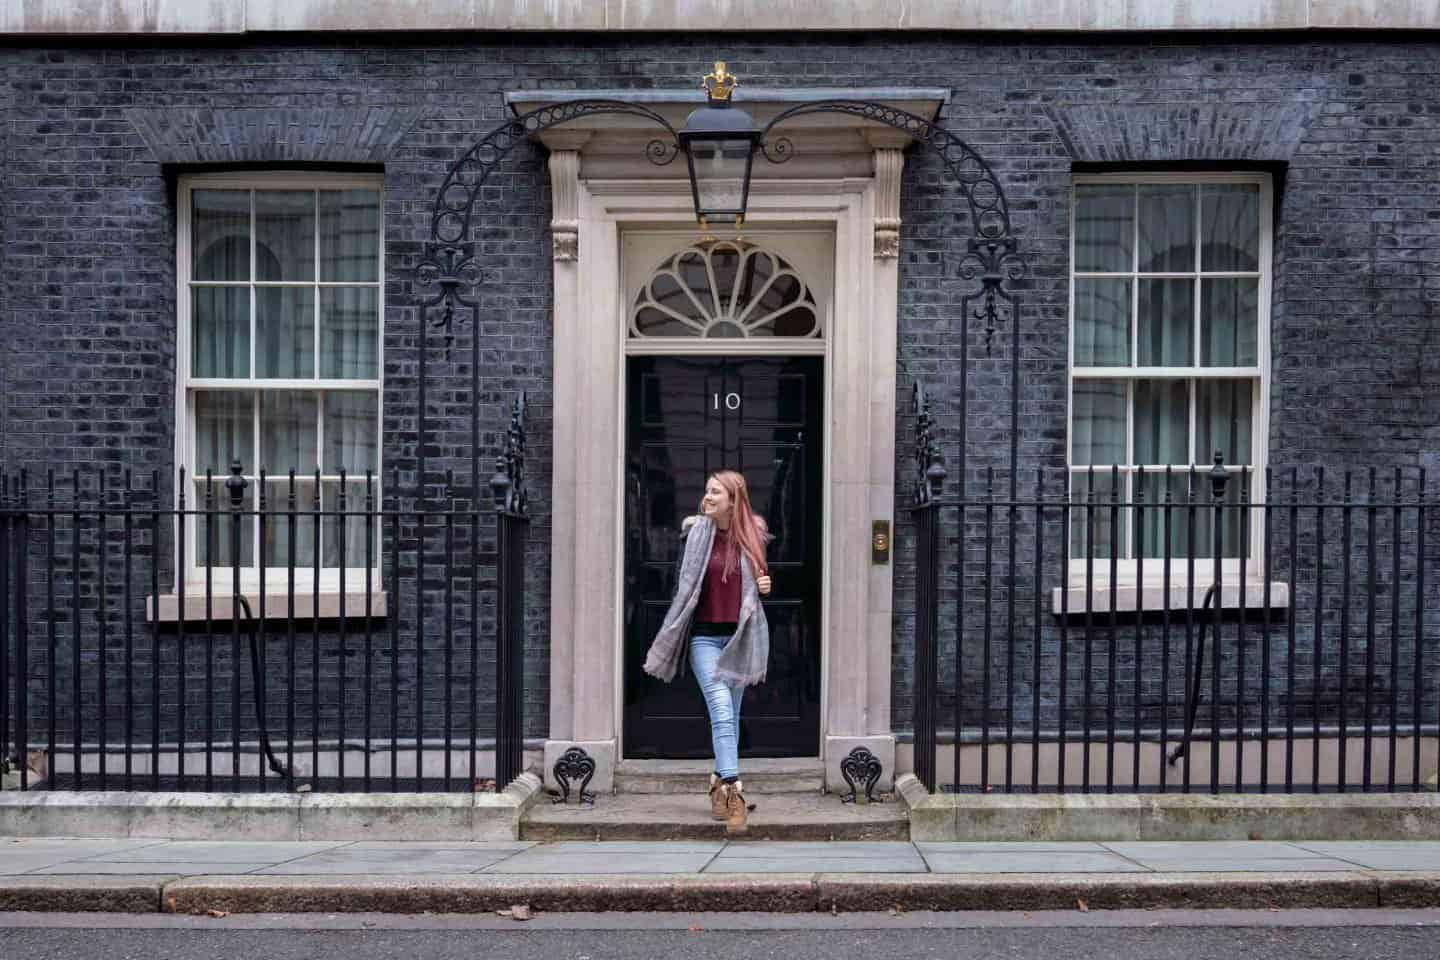 Exploring Downing Street for an Instagram photo.